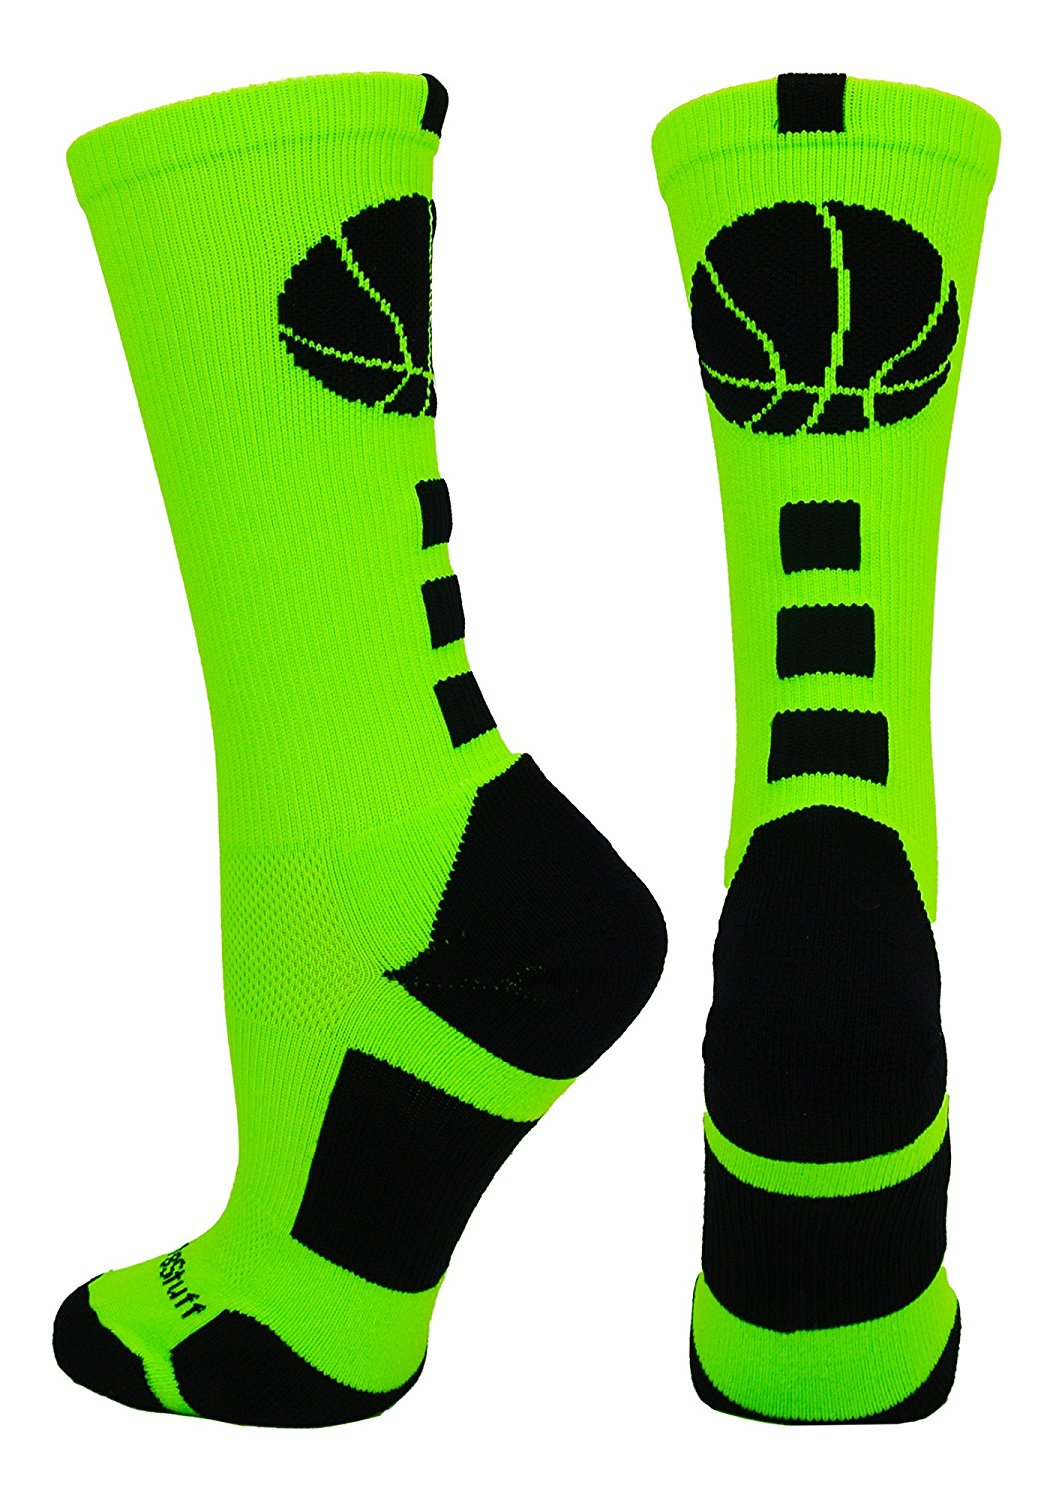 Green Basketball Logo Athletic Crew Socks by MadSportsStuff